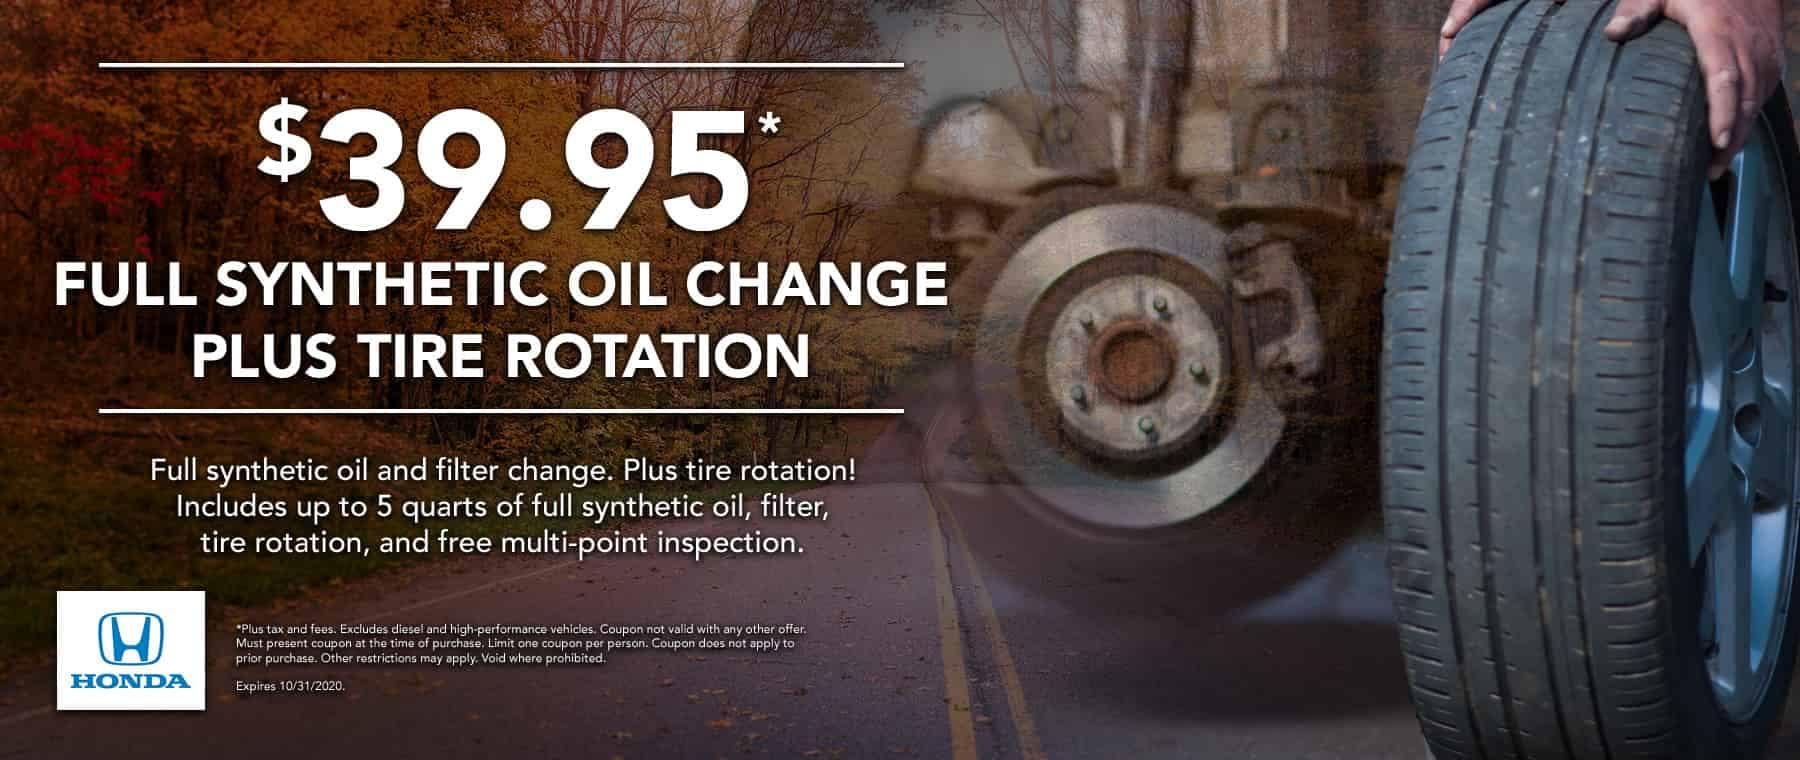 $39.95 Oil Change plus Tire Rotation